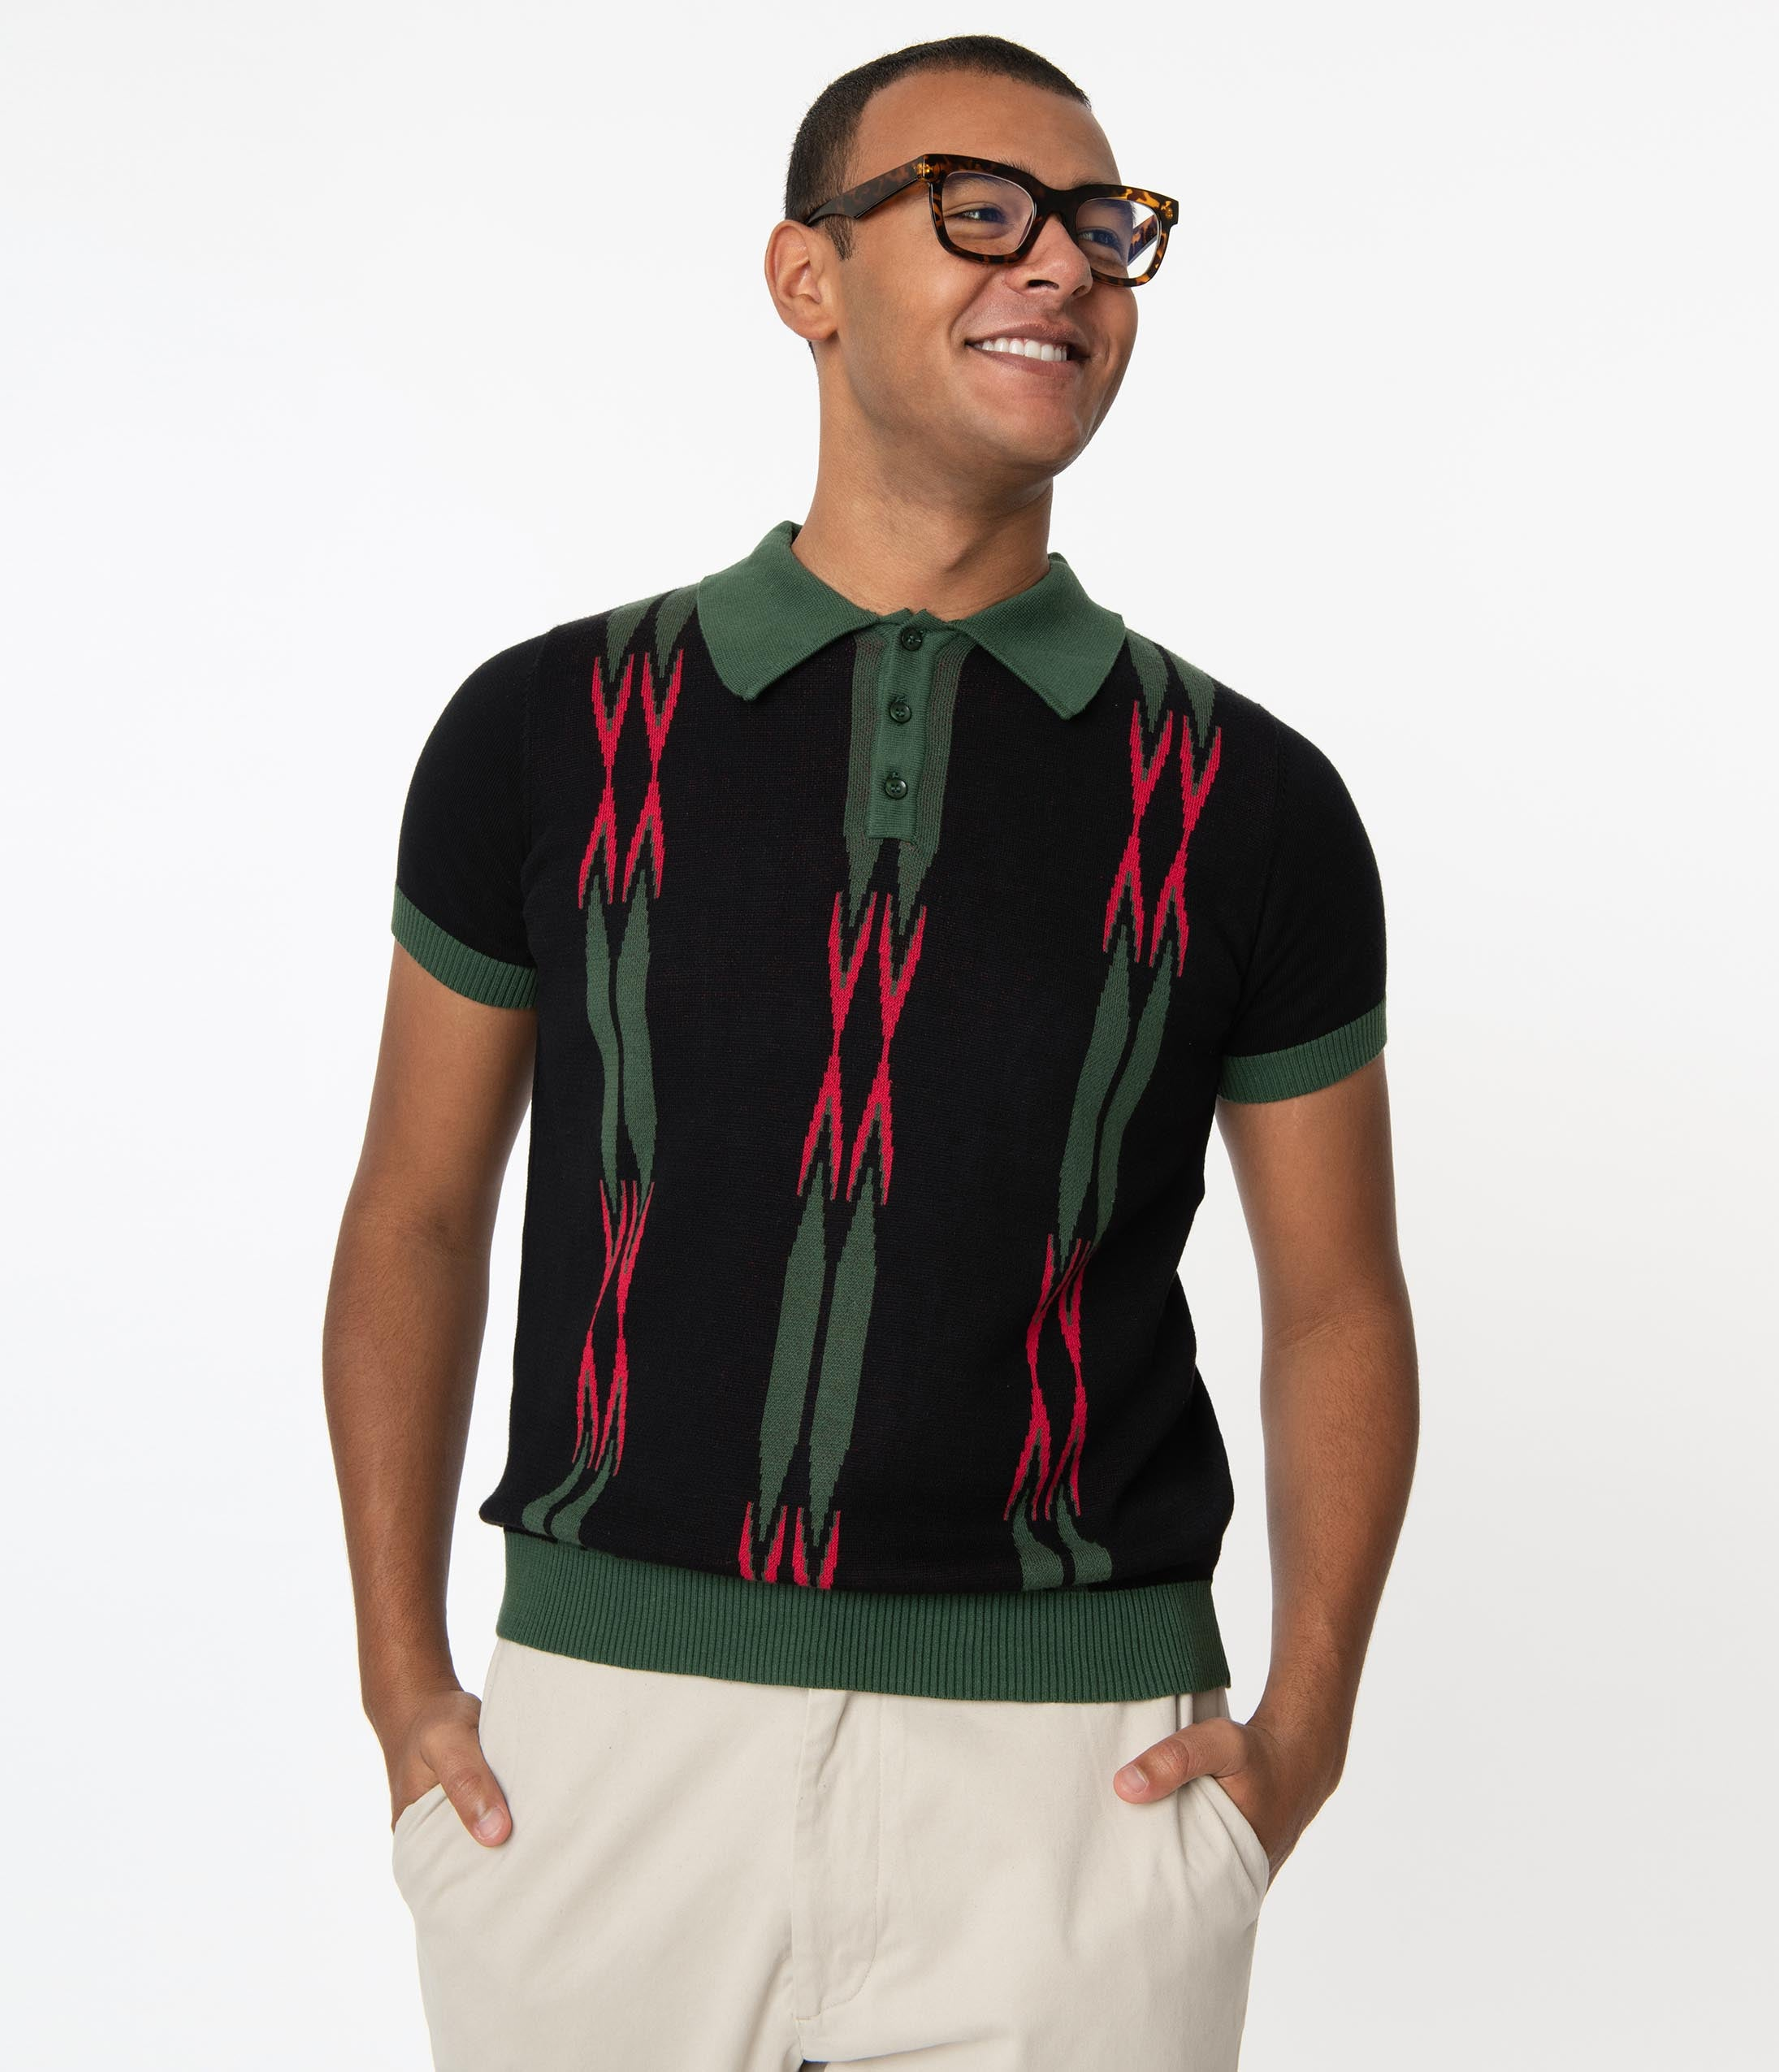 1960s Men's Clothing Collectif Black  Green Marylebone Pablo Mens Polo Shirt $66.00 AT vintagedancer.com